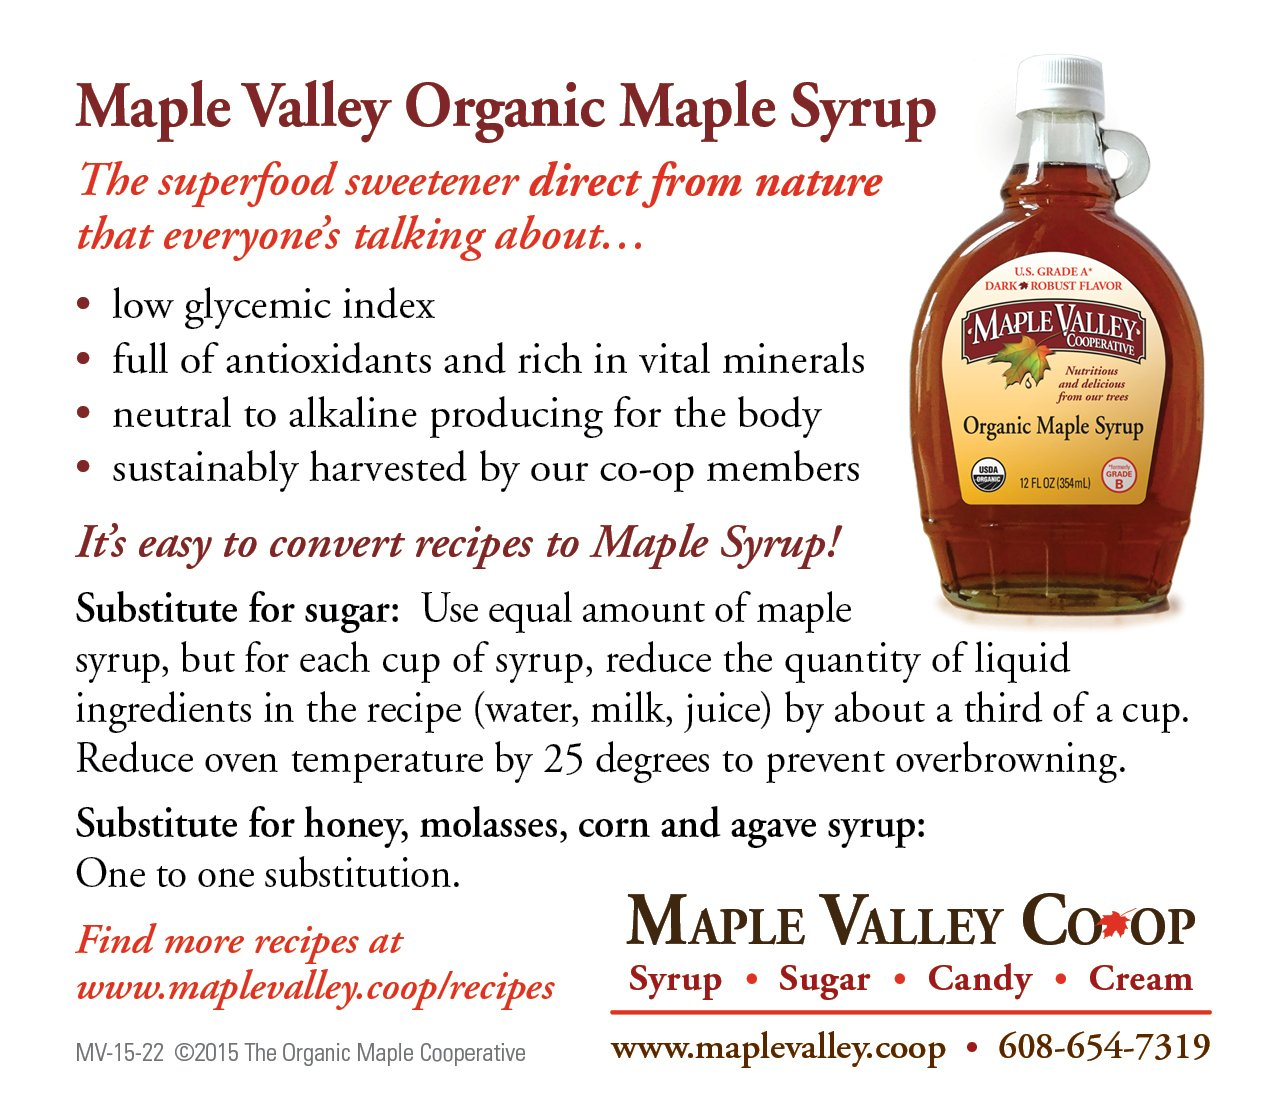 Maple Valley 16 Oz. Organic Maple Syrup - Grade A Amber Rich in Glass Decanter by Maple Valley